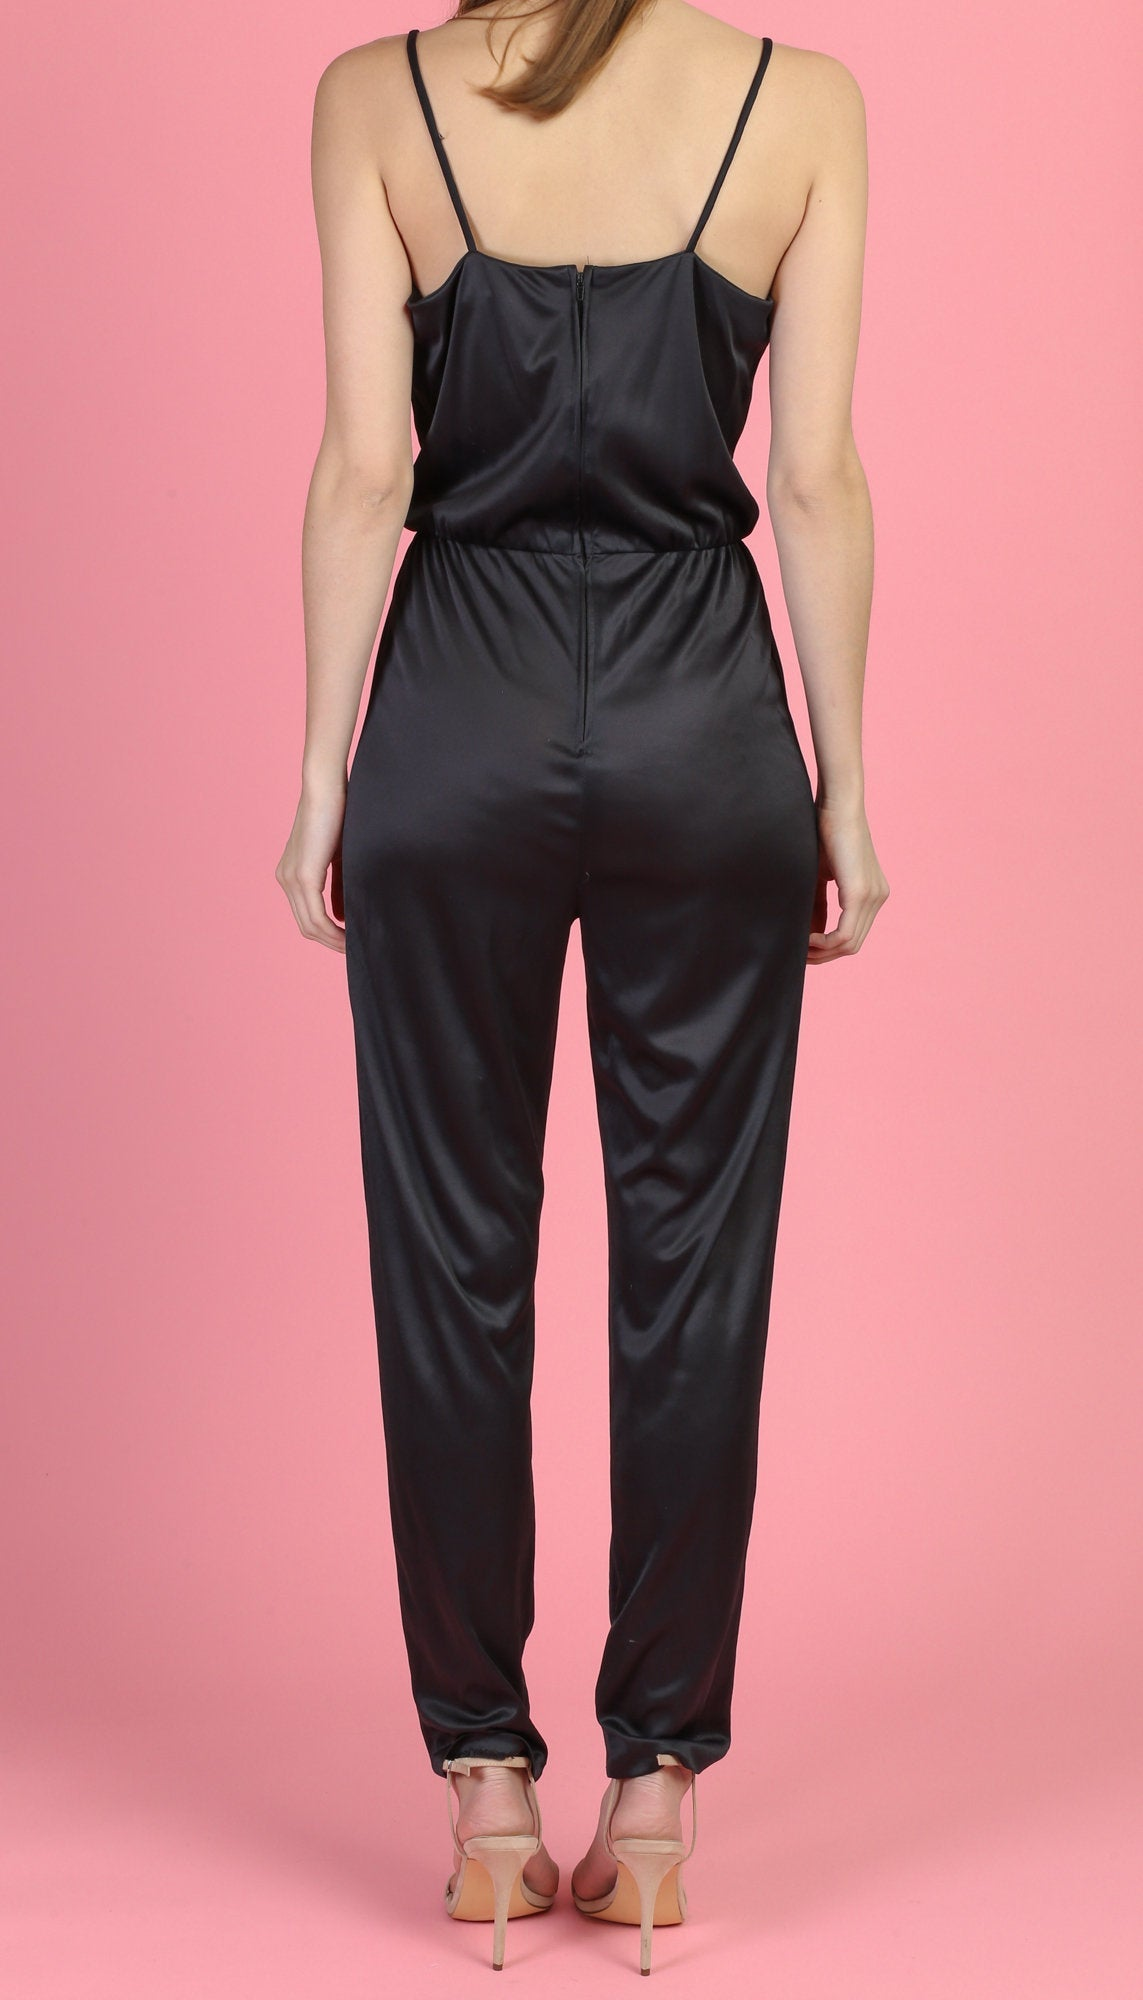 Vintage 80s Disco Jumpsuit - Medium